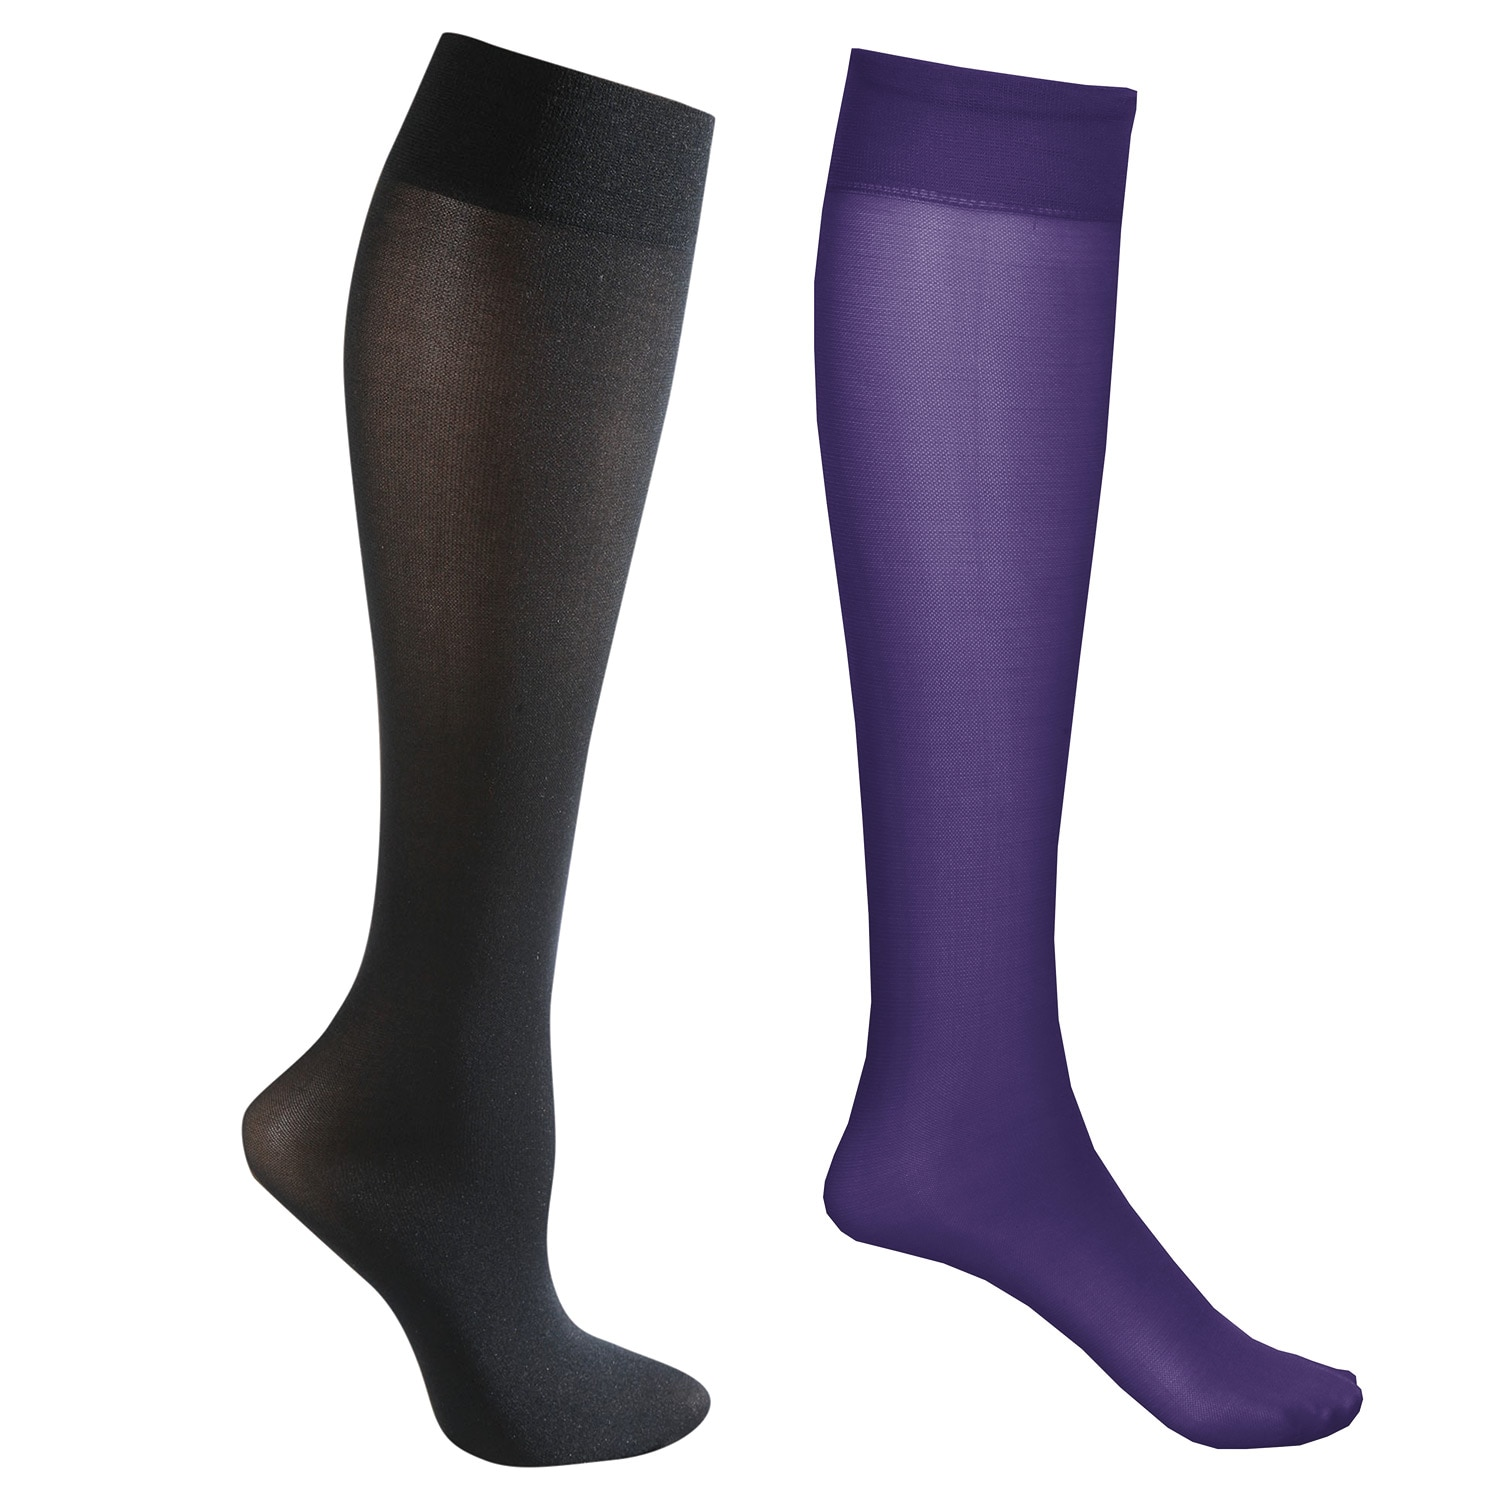 03a5e7d3b 2 Pair Mild Compression Knee High Stockings - Wide Calf Cmpsq PurBlk ...